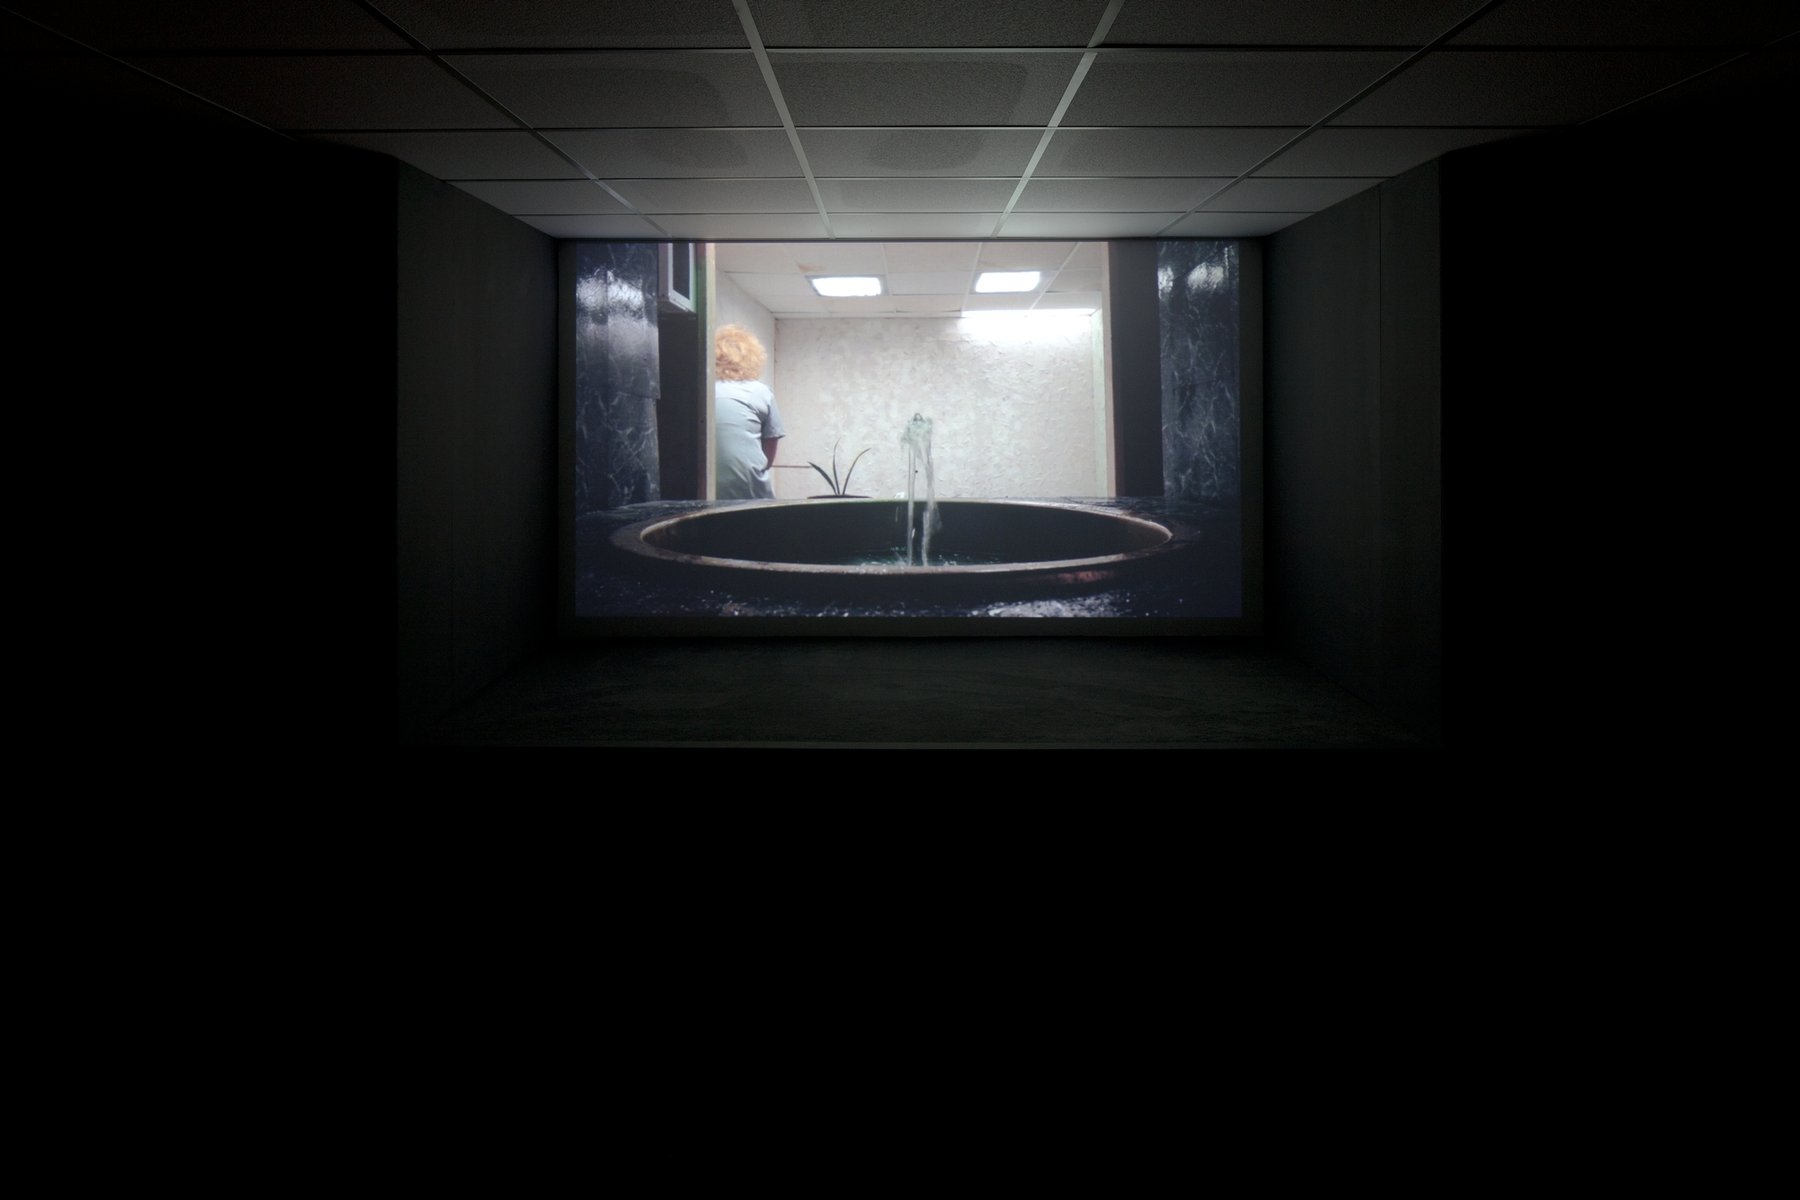 A projection of a fountain with a person in the background